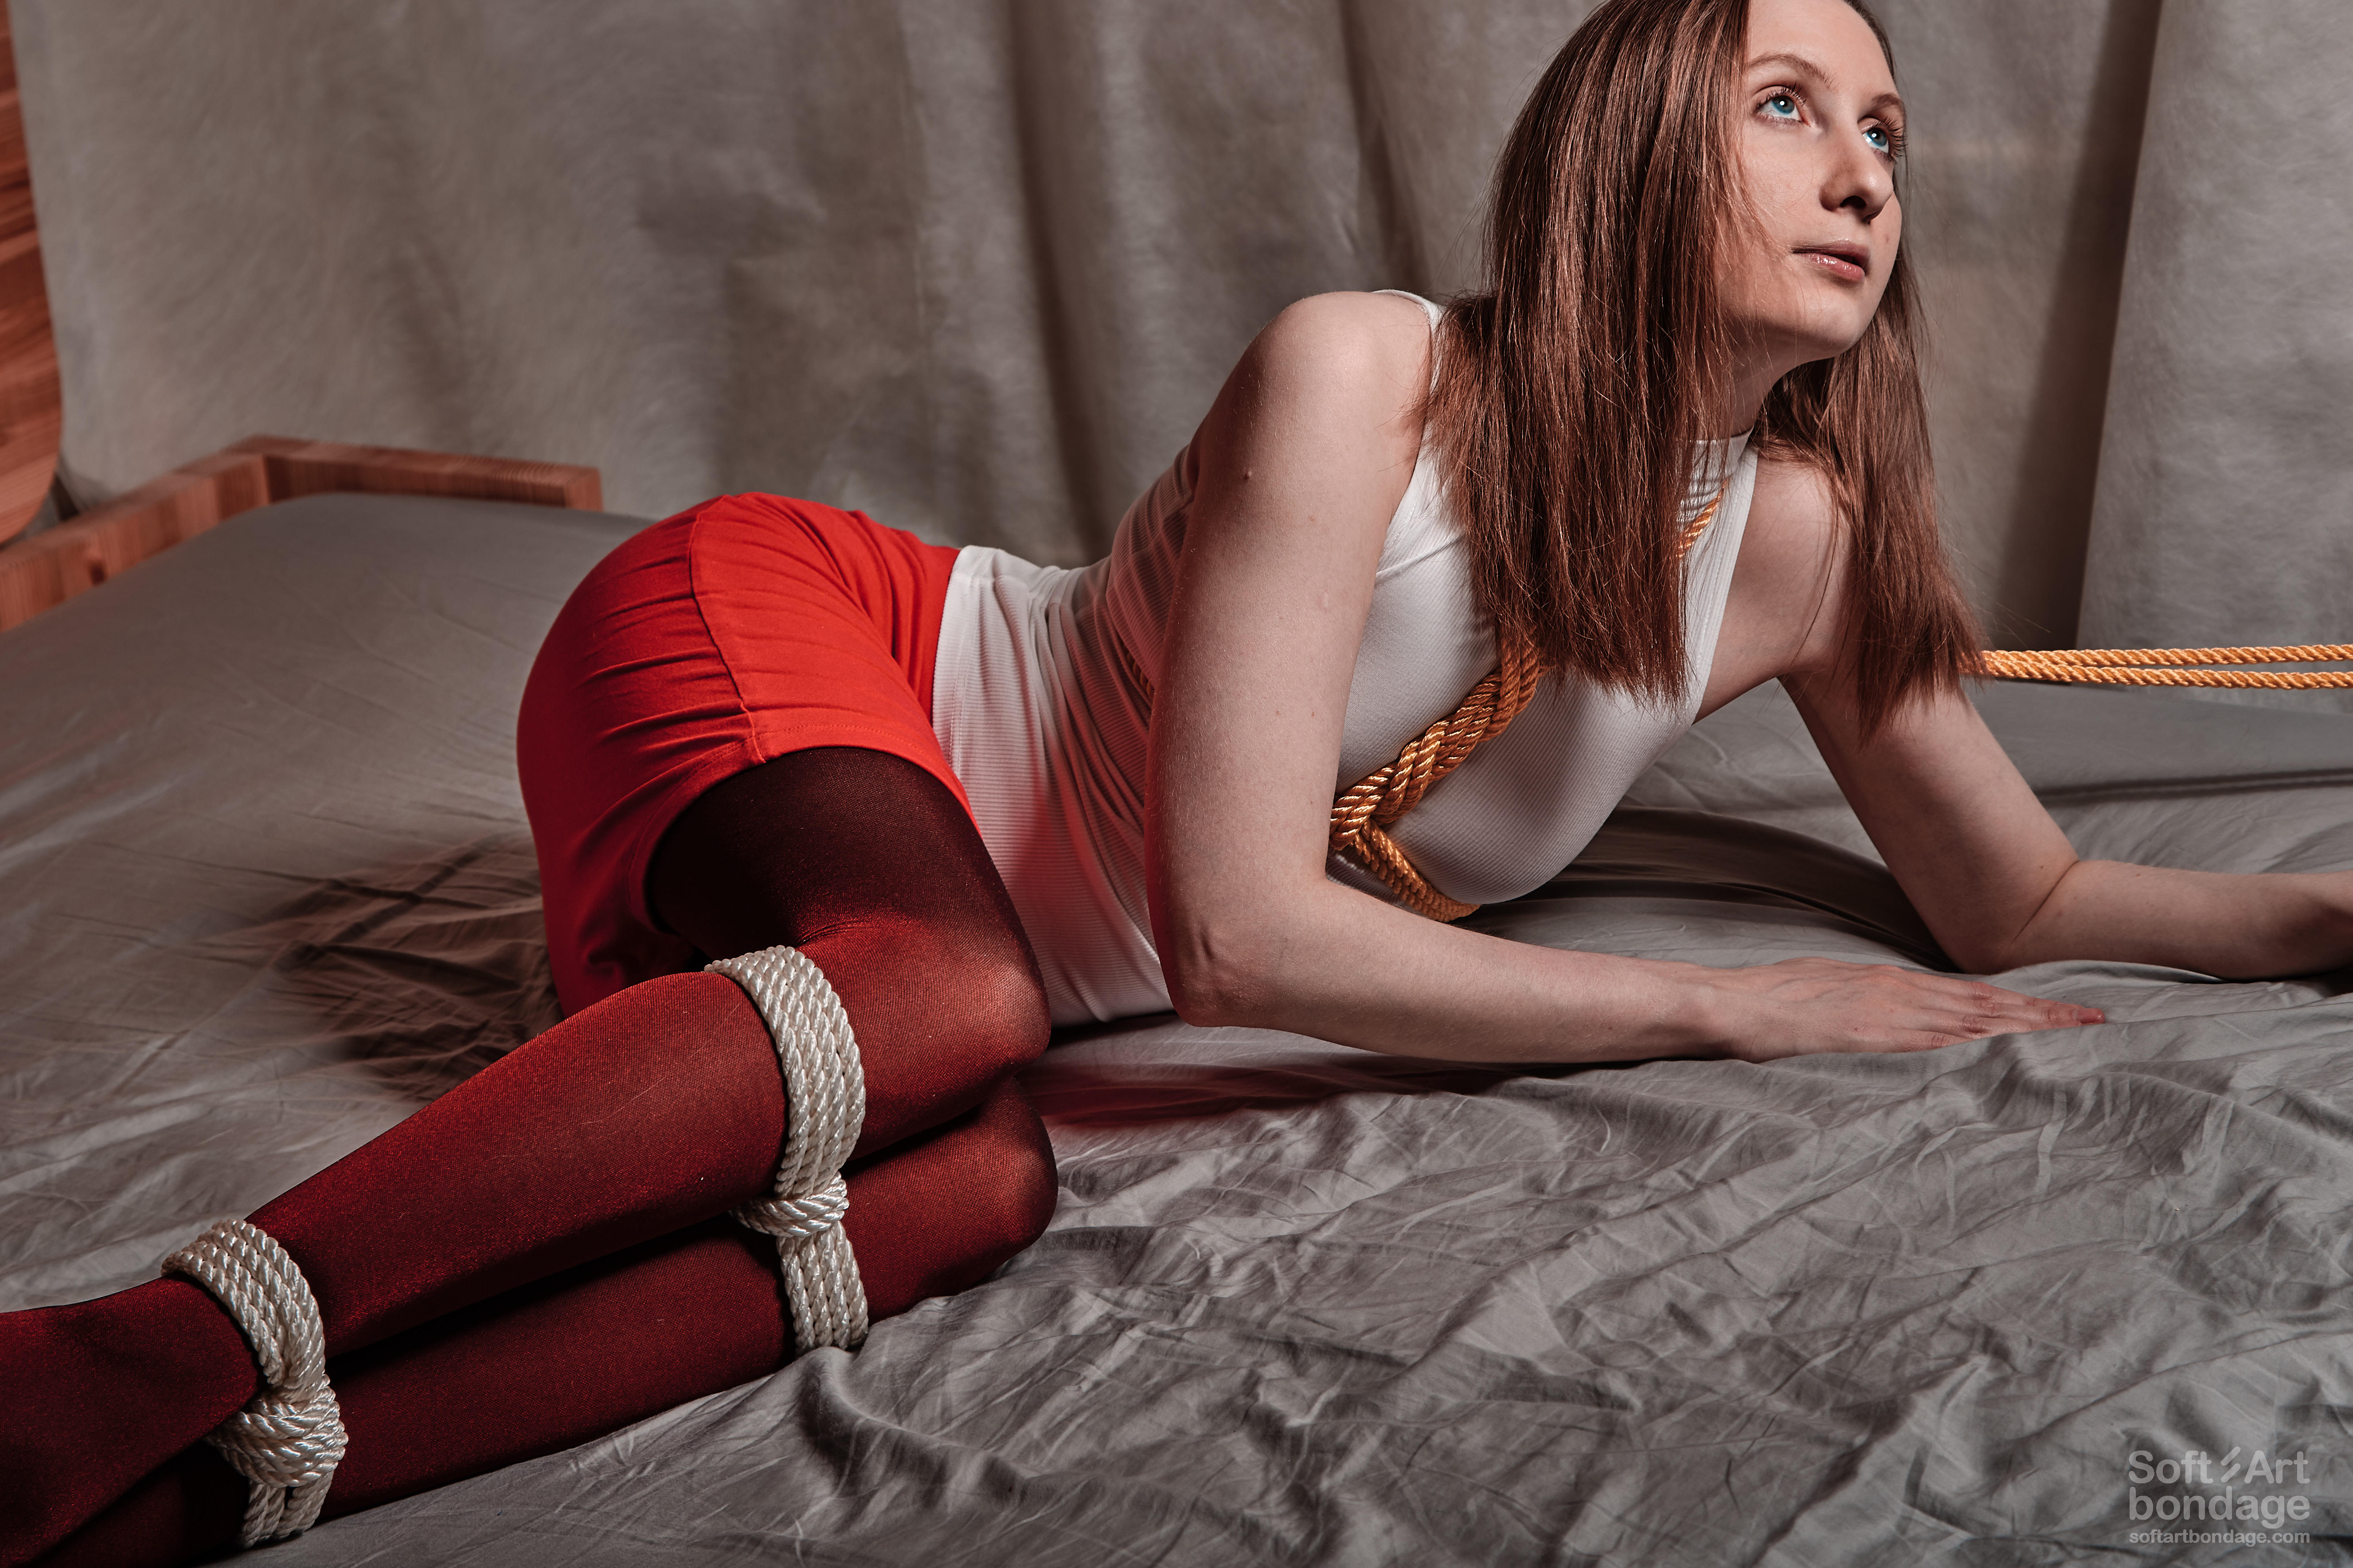 Soft Art Bondage   Leash chest and tied legs in red pantyhose with